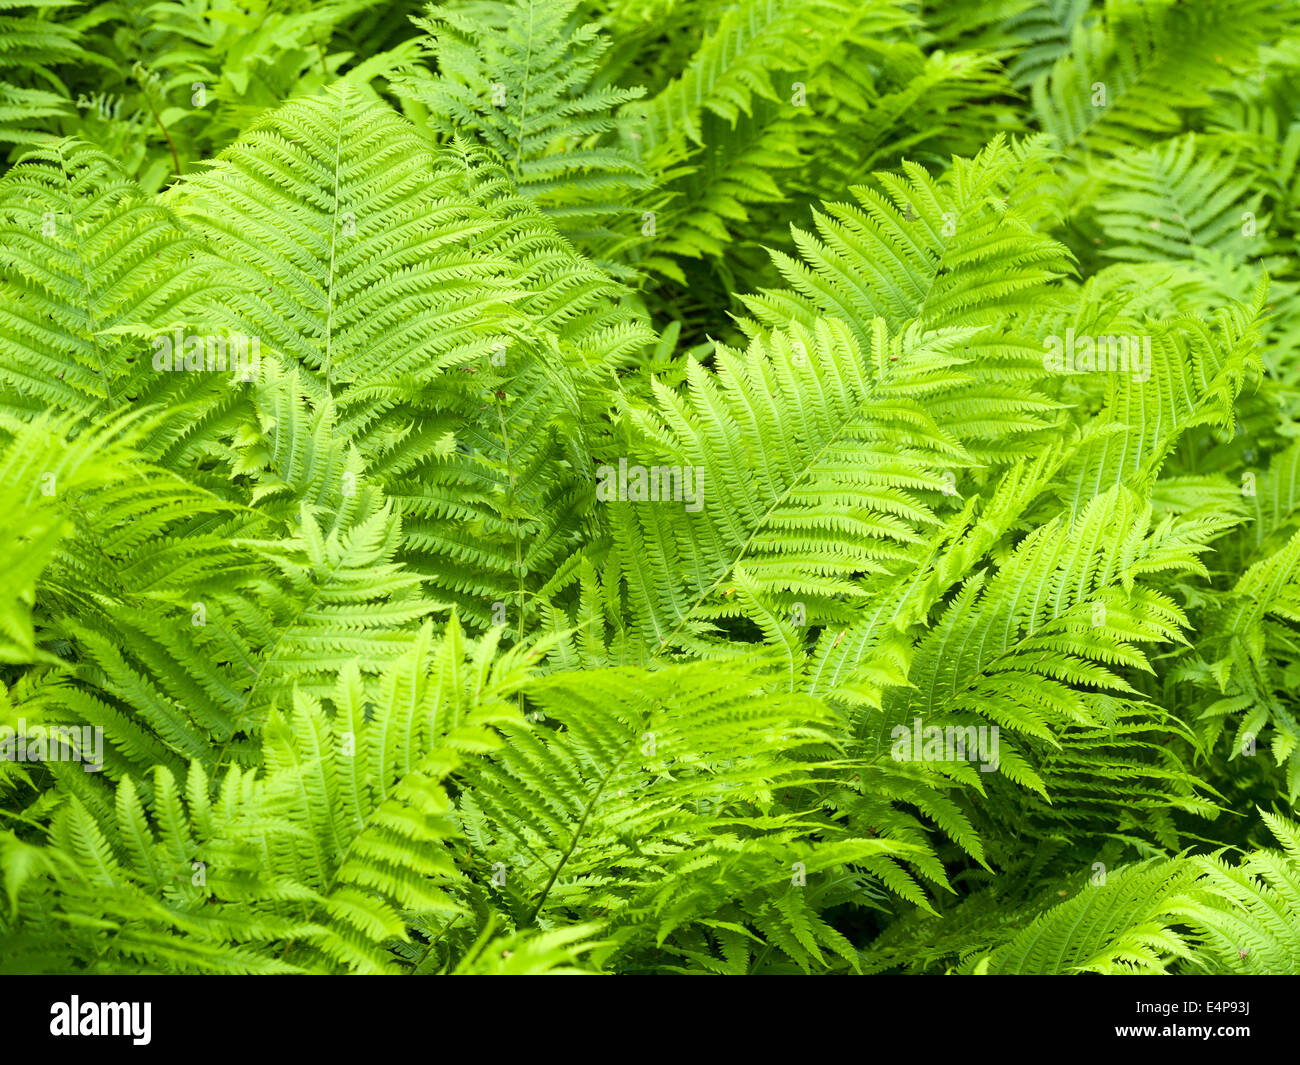 Overlapping Ferns. An exuberant growth of ferns on the forest floor. Fronds overlap and fill the frame. - Stock Image